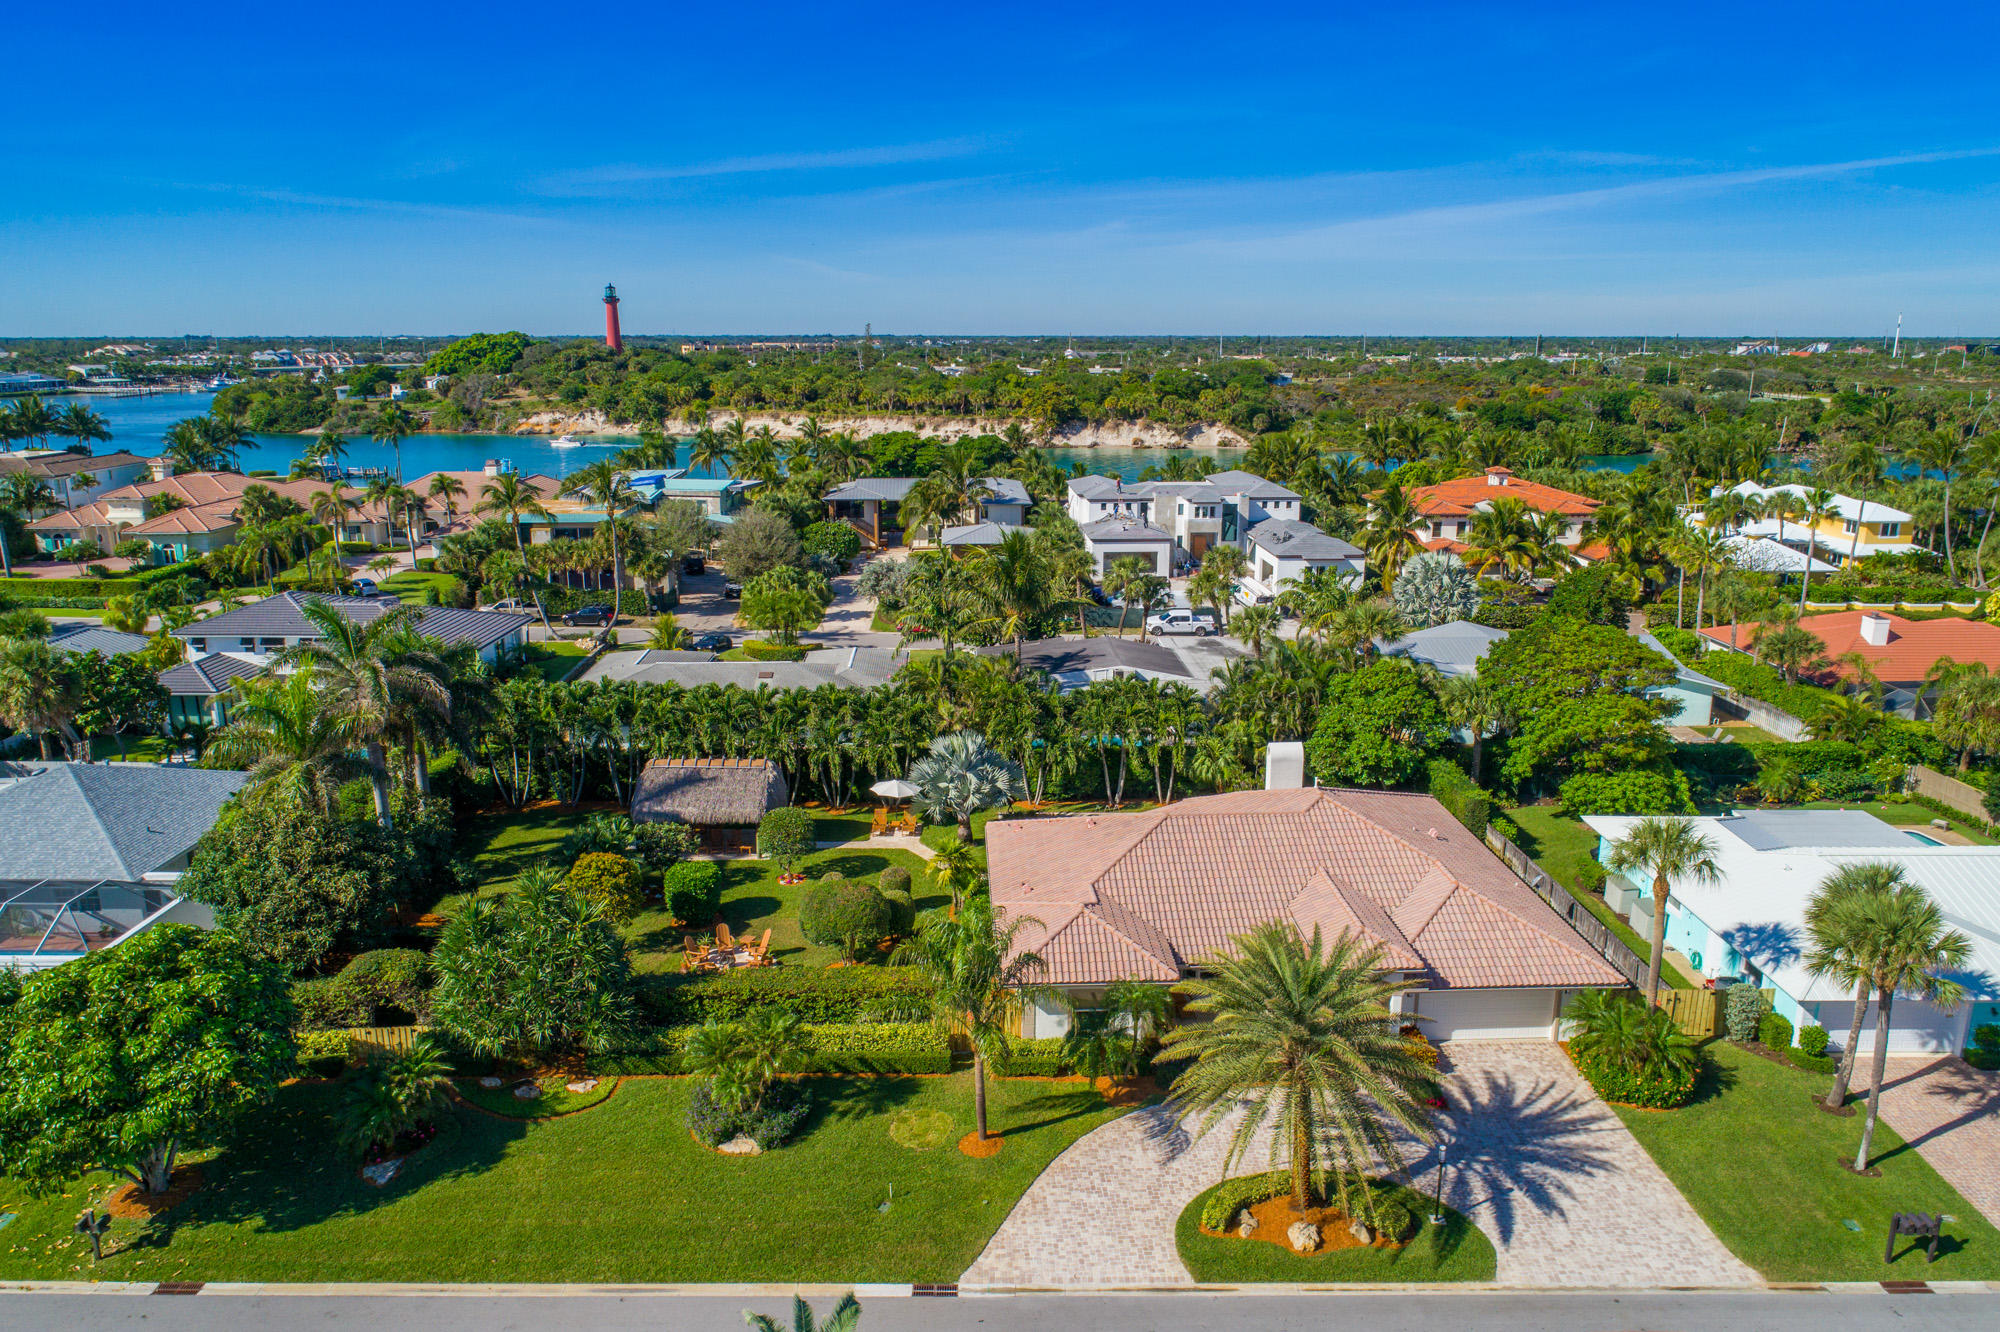 New Home for sale at 158 Beacon Lane in Jupiter